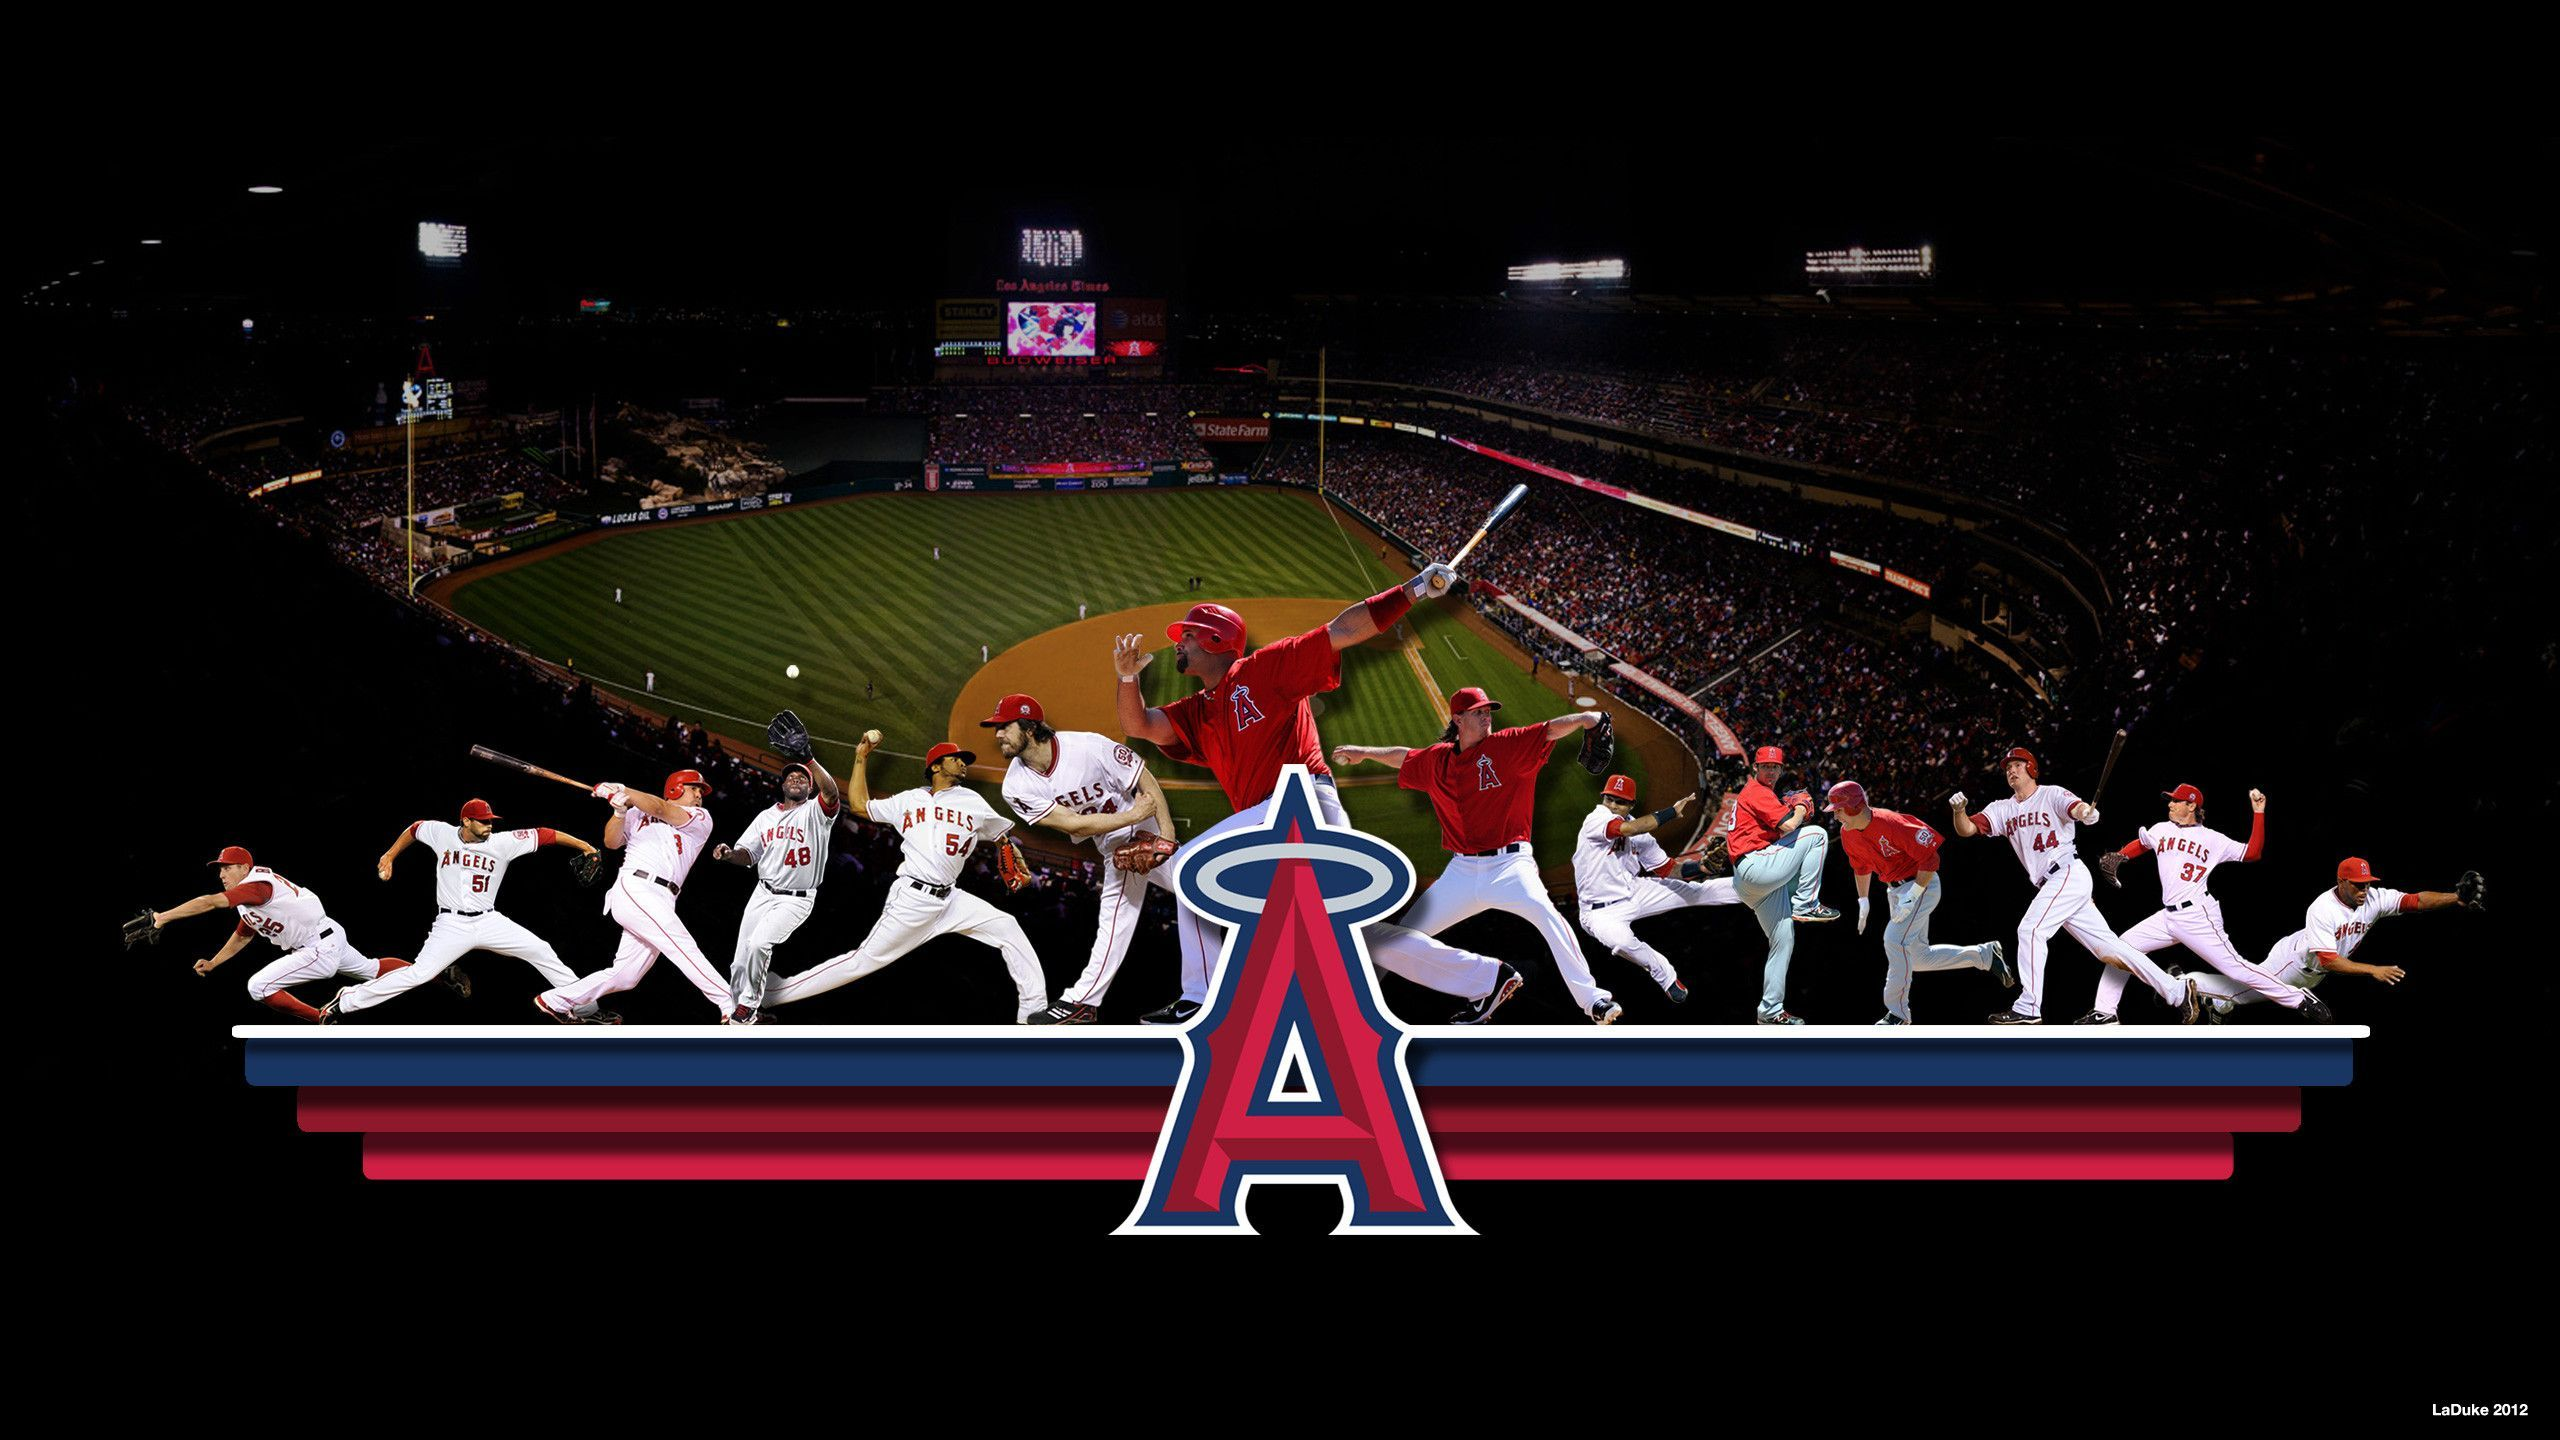 2560x1440 - Los Angeles Angels of Anaheim Wallpapers 1